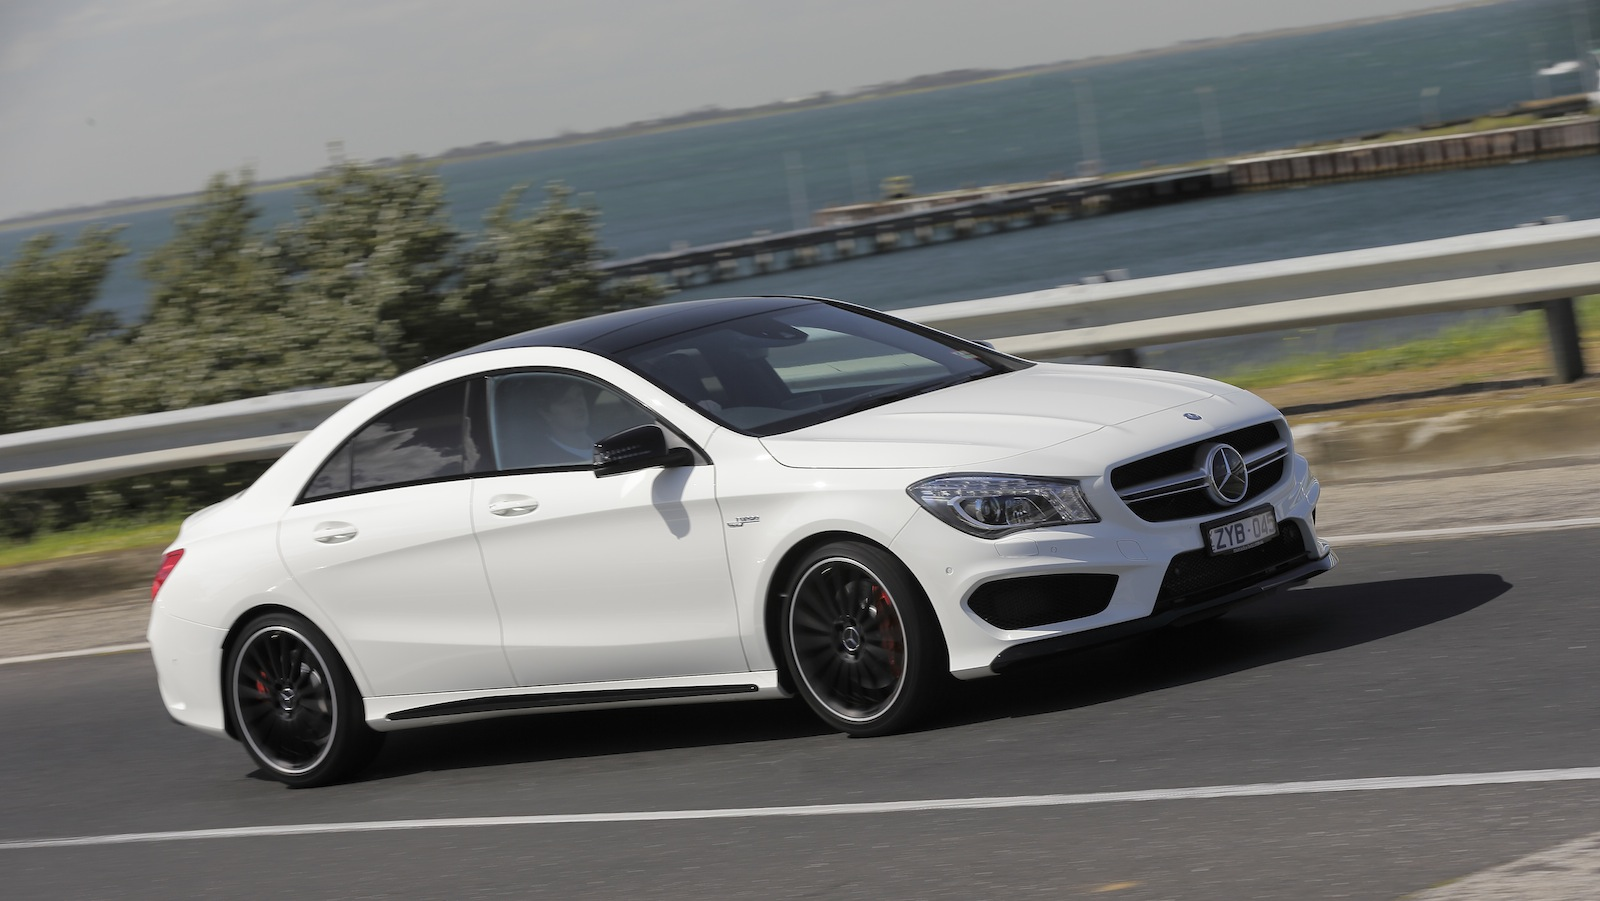 Mercedes benz cla45 amg reviews mercedes benz cla45 amg for 2016 mercedes benz cla45 amg